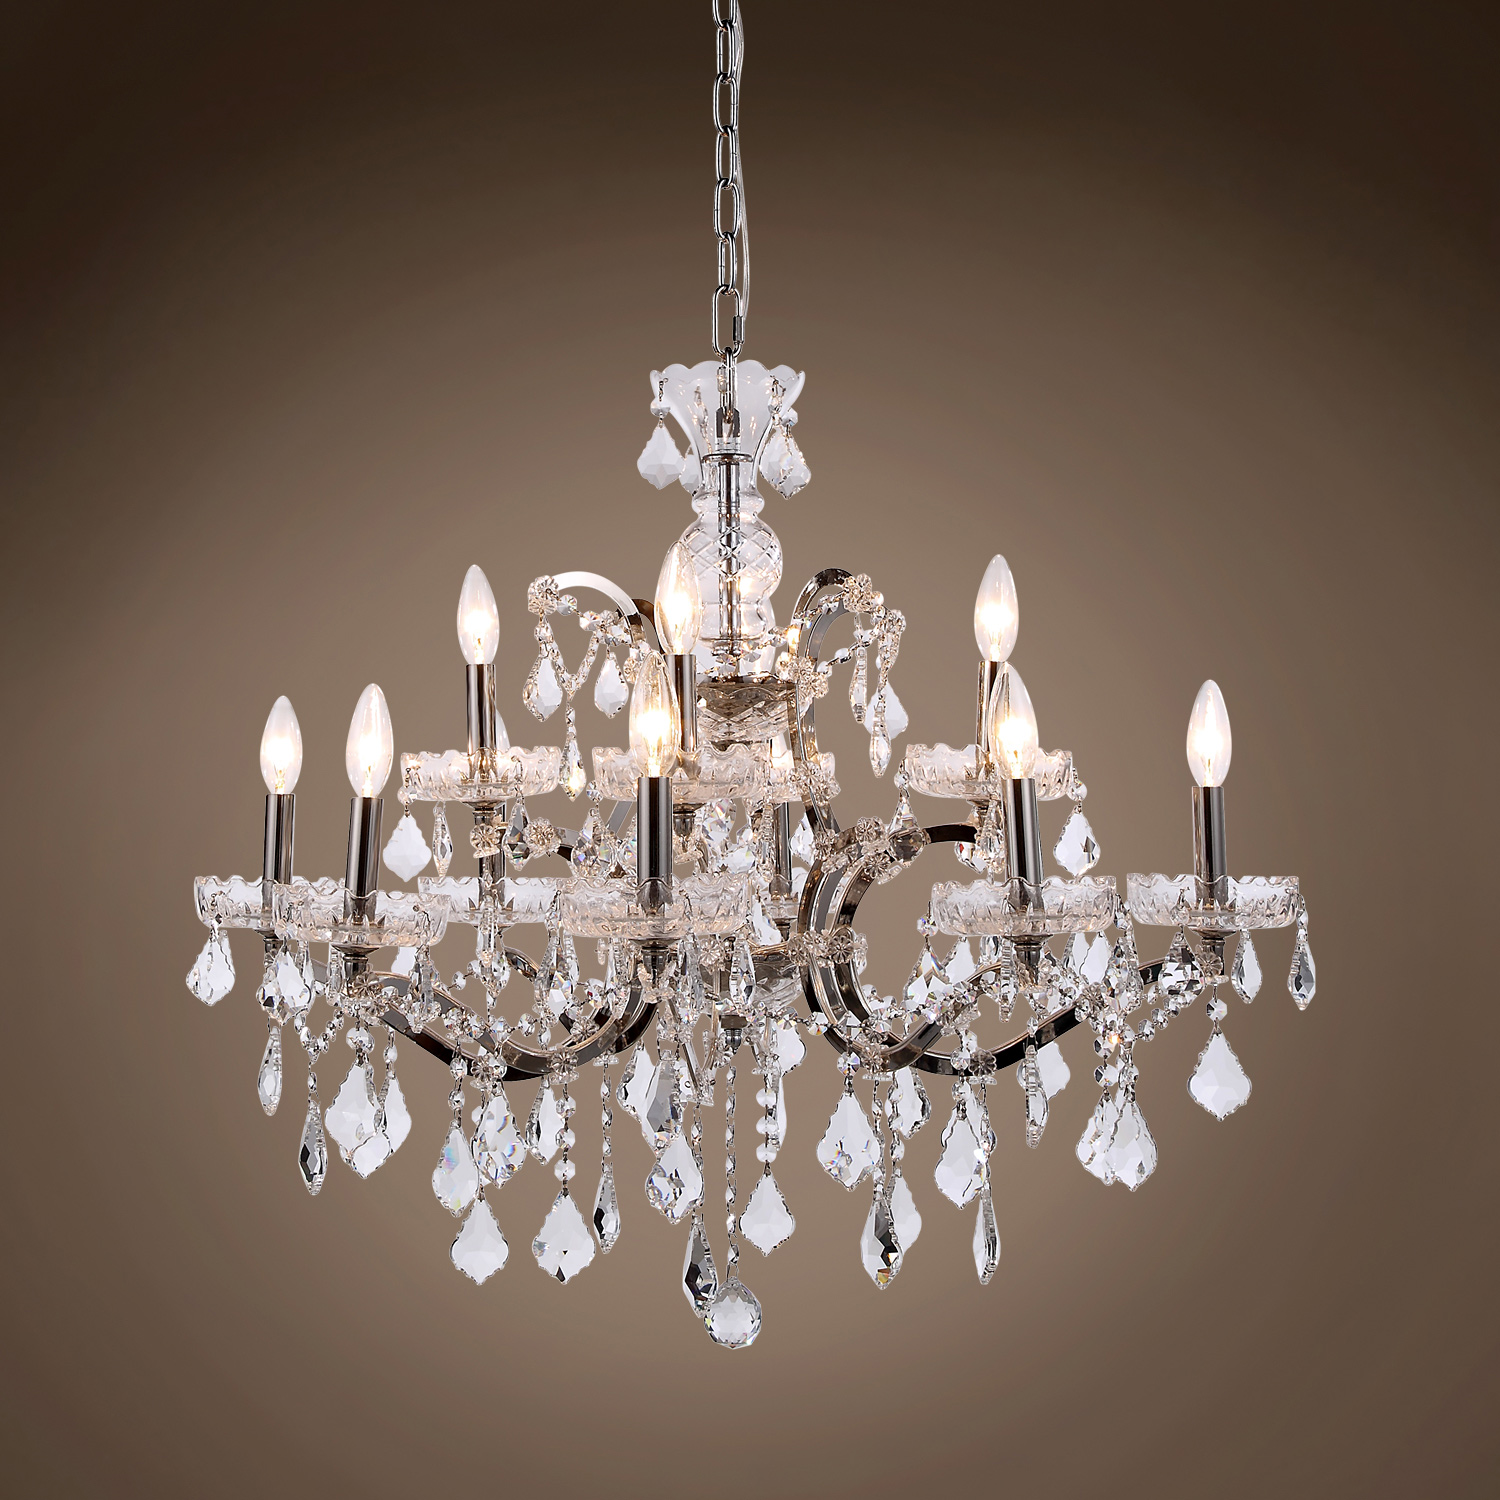 iron chandelier light the versailles crystal p chandeliers with black and